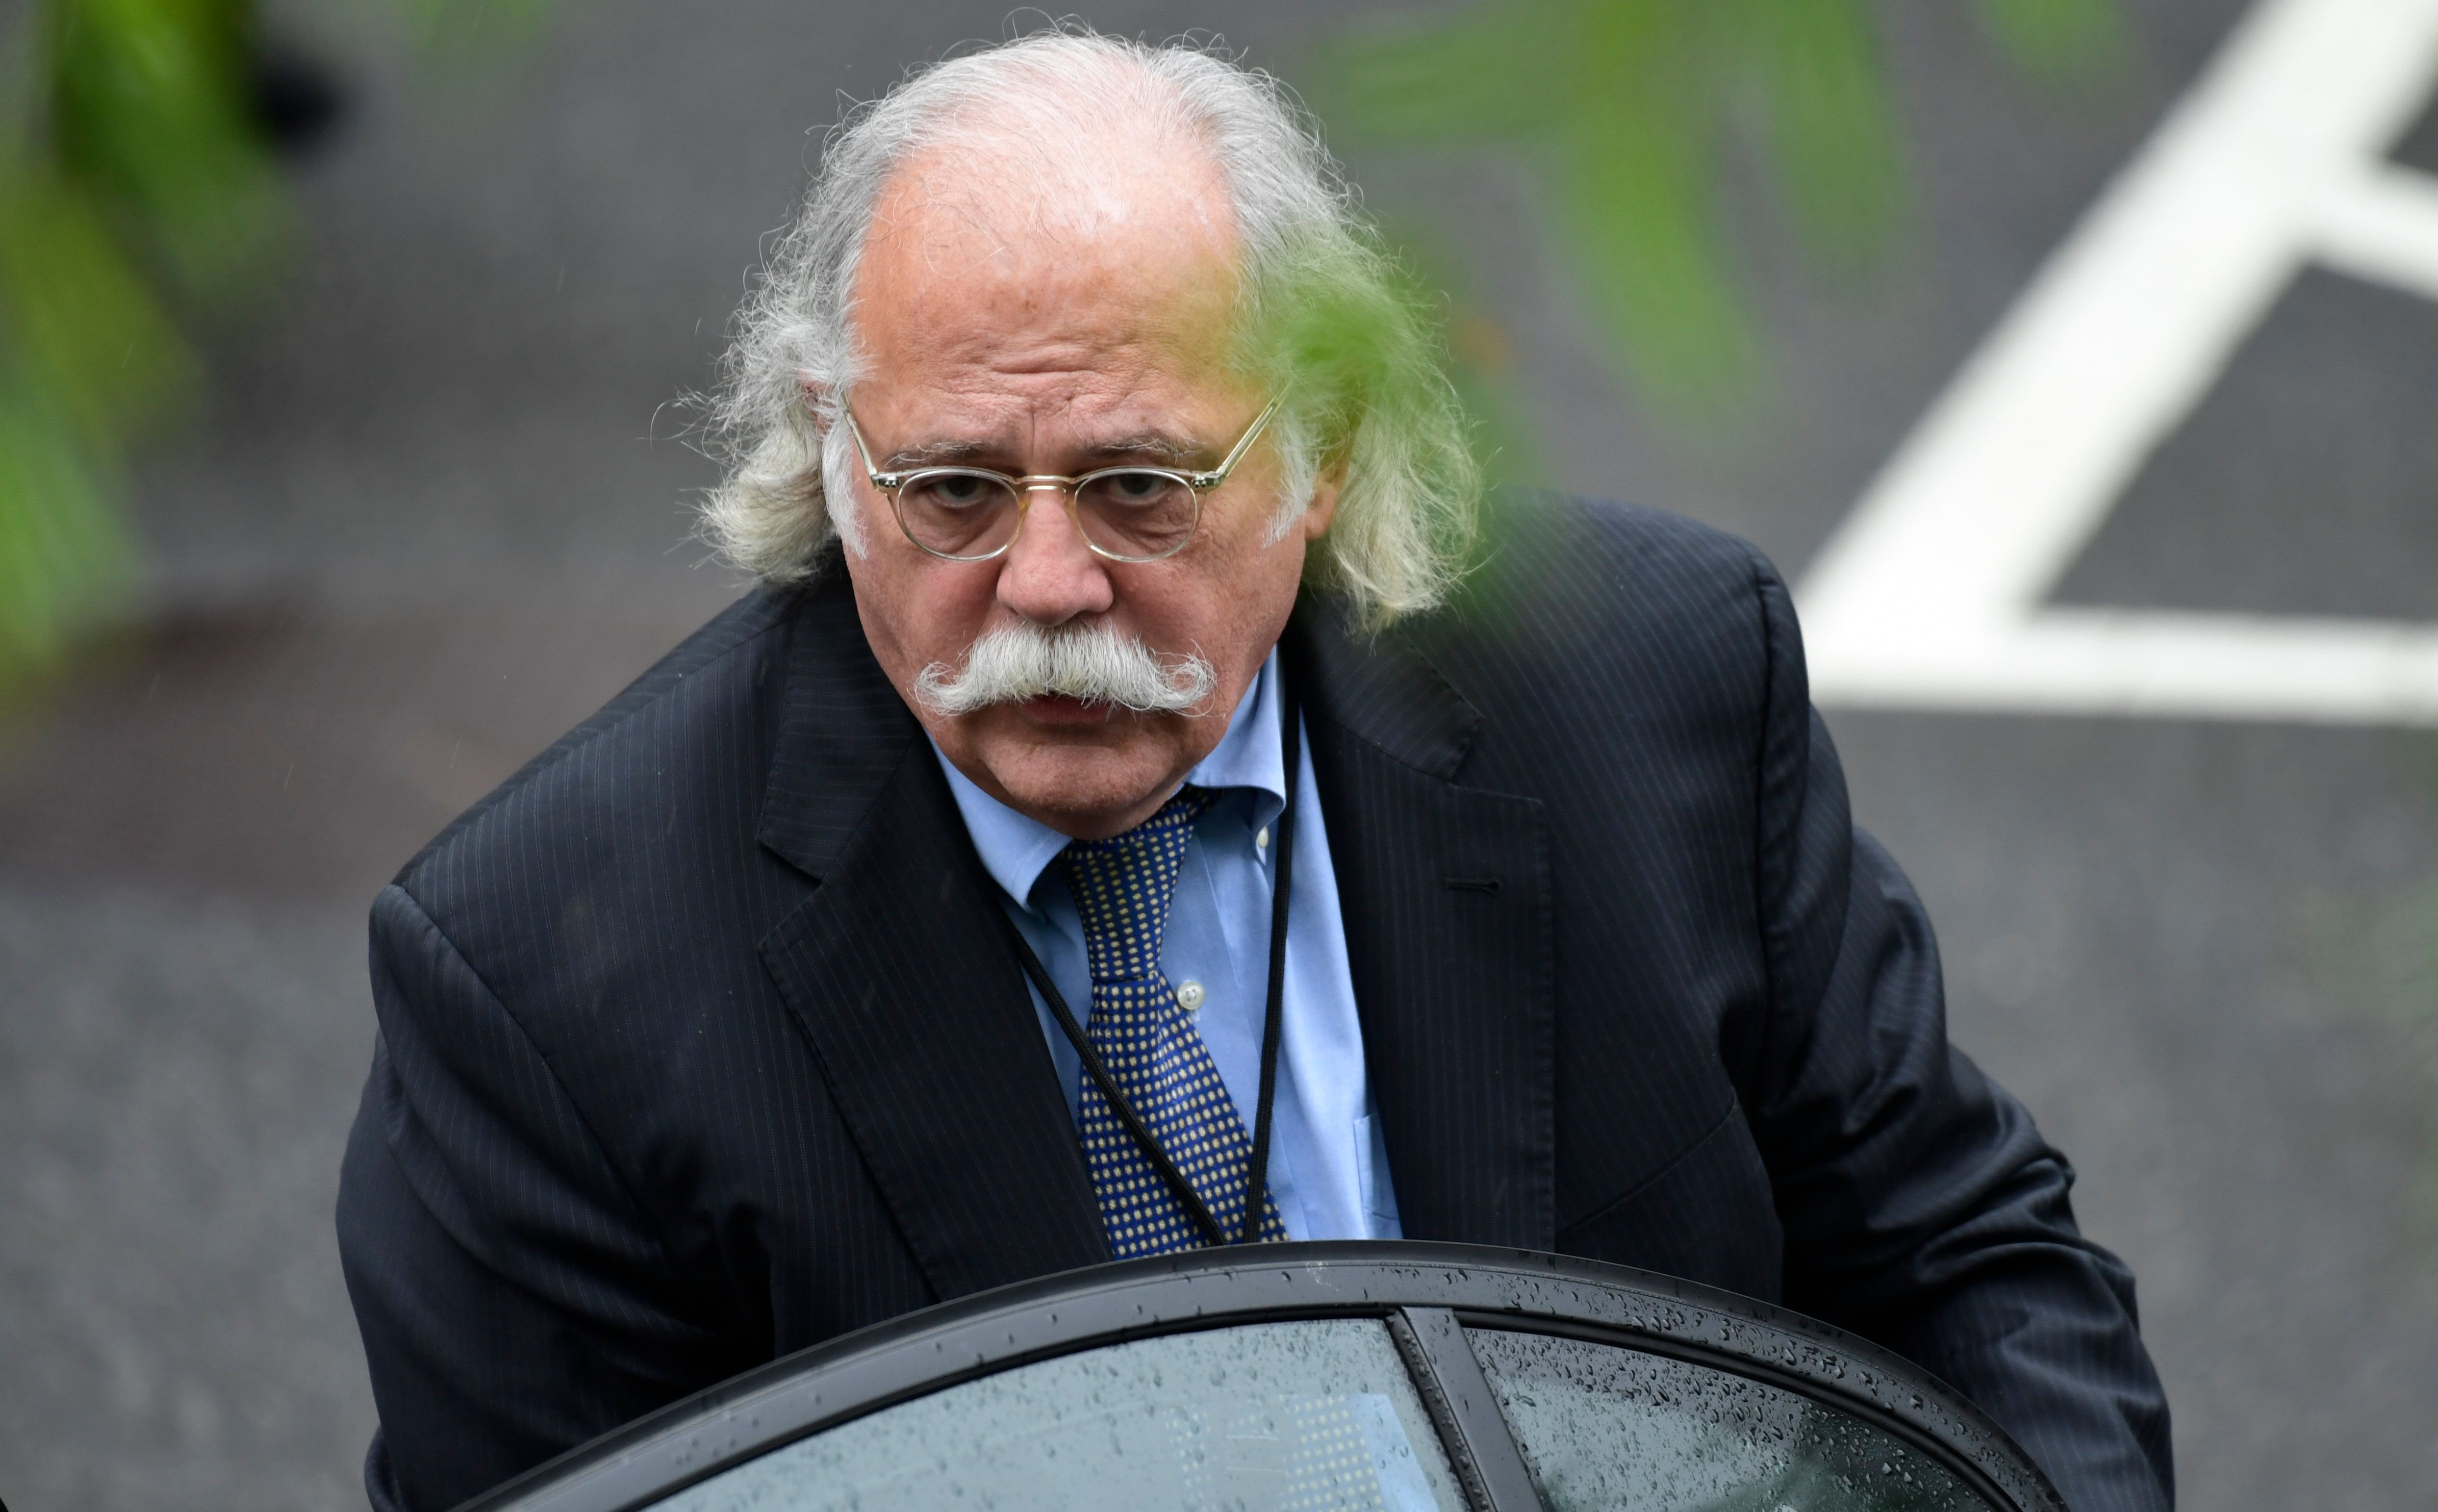 """FILE - In this May 17, 2018 file photo, White House lawyer Ty Cobb gets into his car at the White House in Washington. The former White House special counsel considers special prosecutor Robert Mueller """"an American hero.""""   Cobb tells ABC News' podcast """"The Investigation"""" he does not share President Donald Trump's opinion that Mueller's probe into Russian meddling in the election is """"a witch hunt.""""  Cobb says Mueller is a """"very justice-oriented person.""""   (AP Photo/Susan Walsh, File)"""